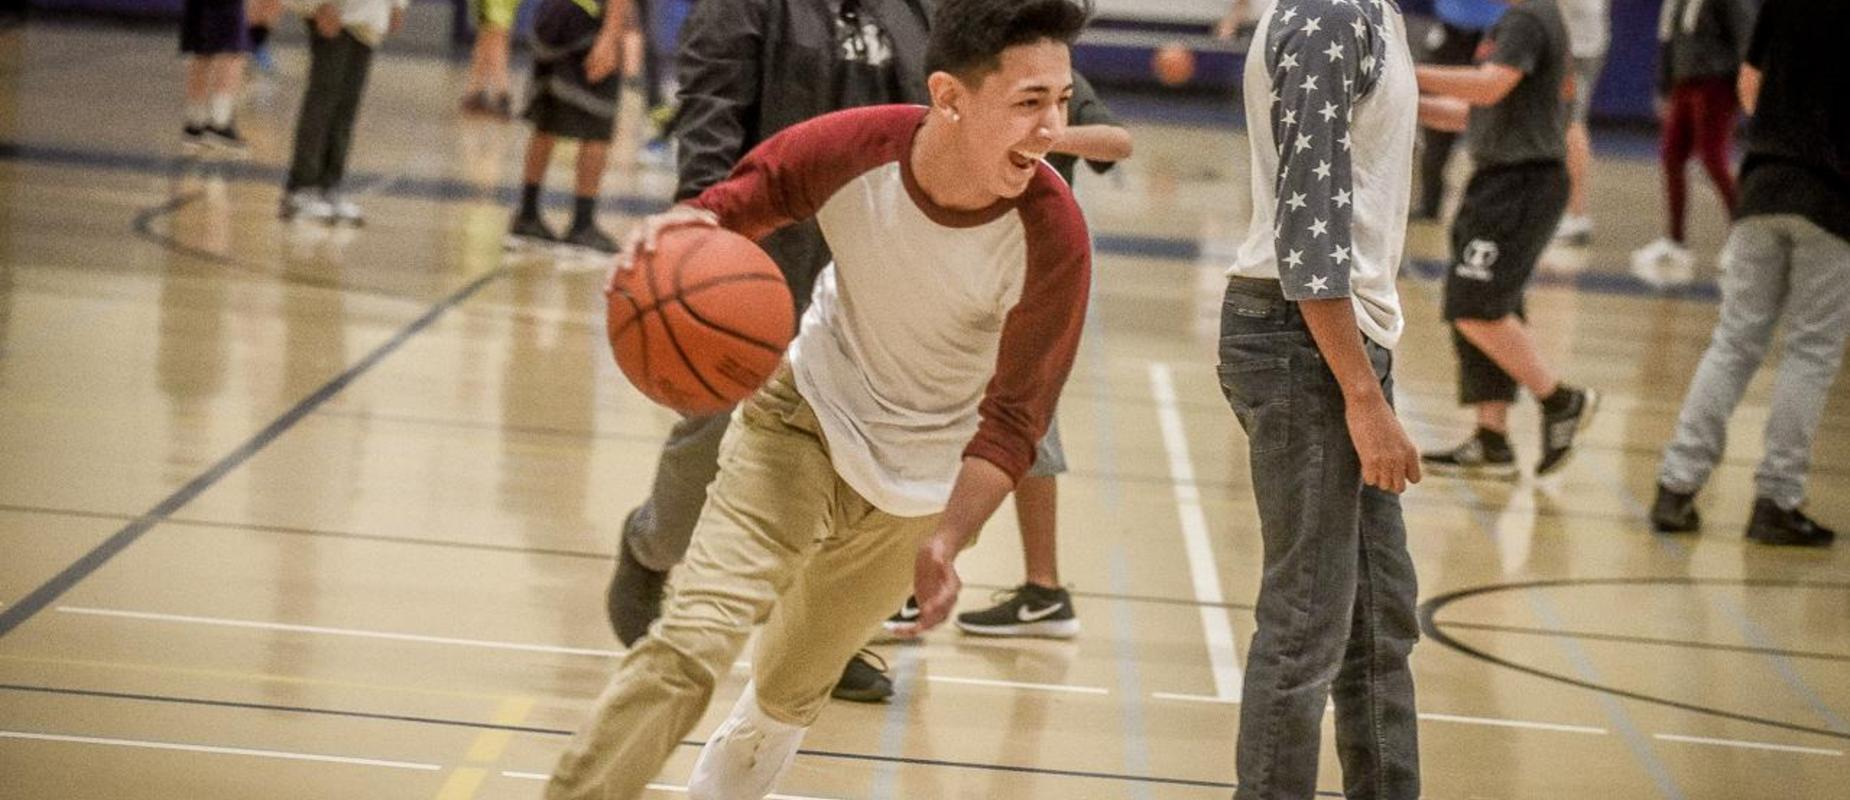 Student laughing and dribbling a basketball